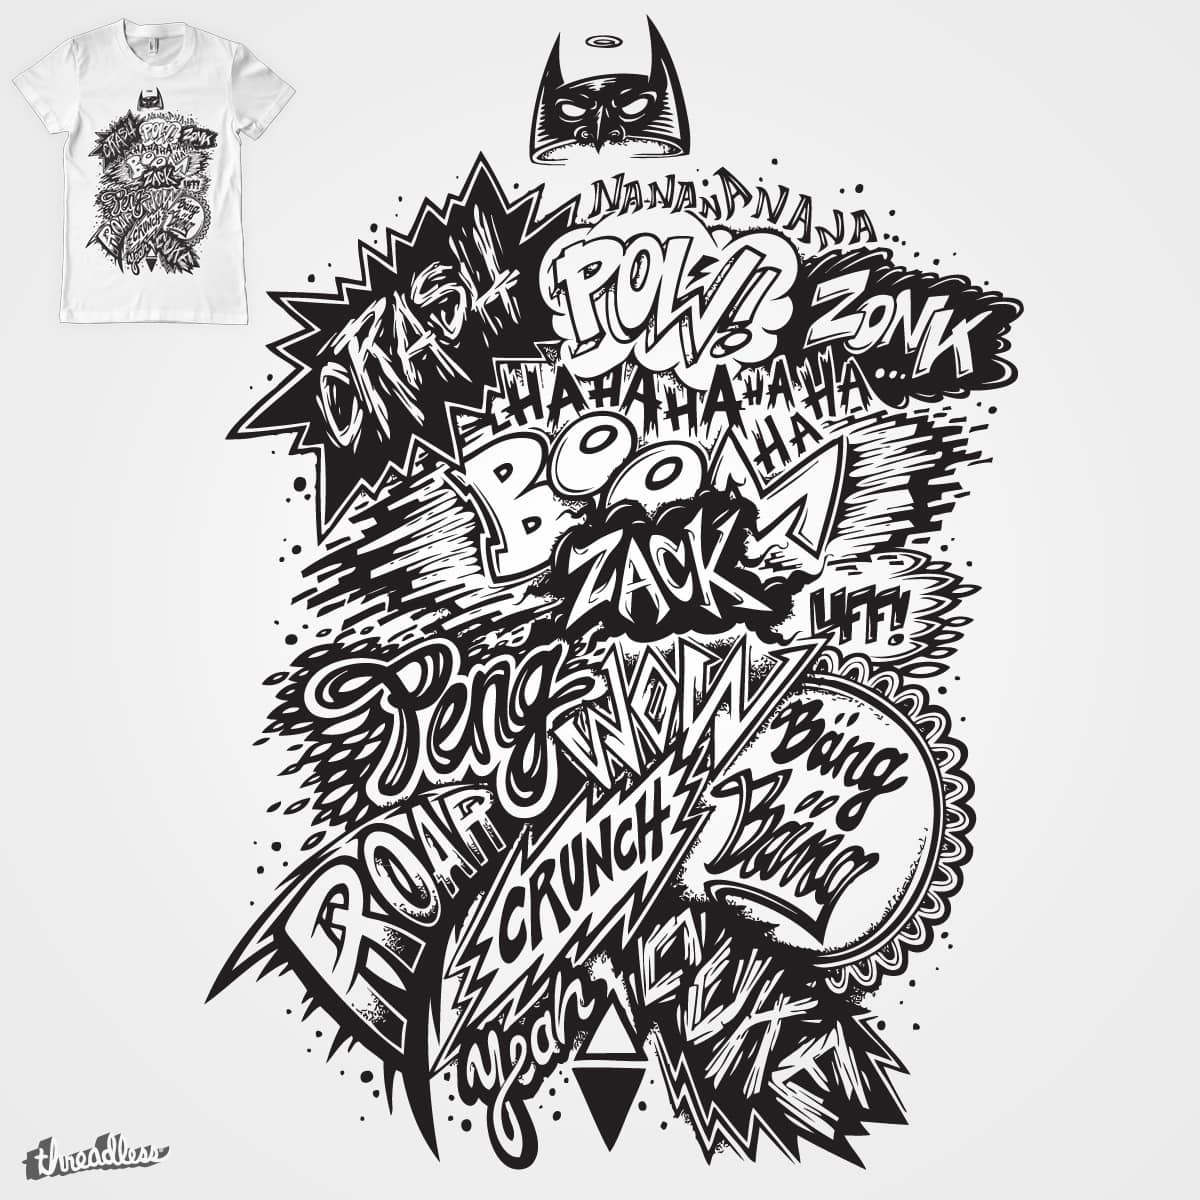 Nanananana by mikefriedrich on Threadless